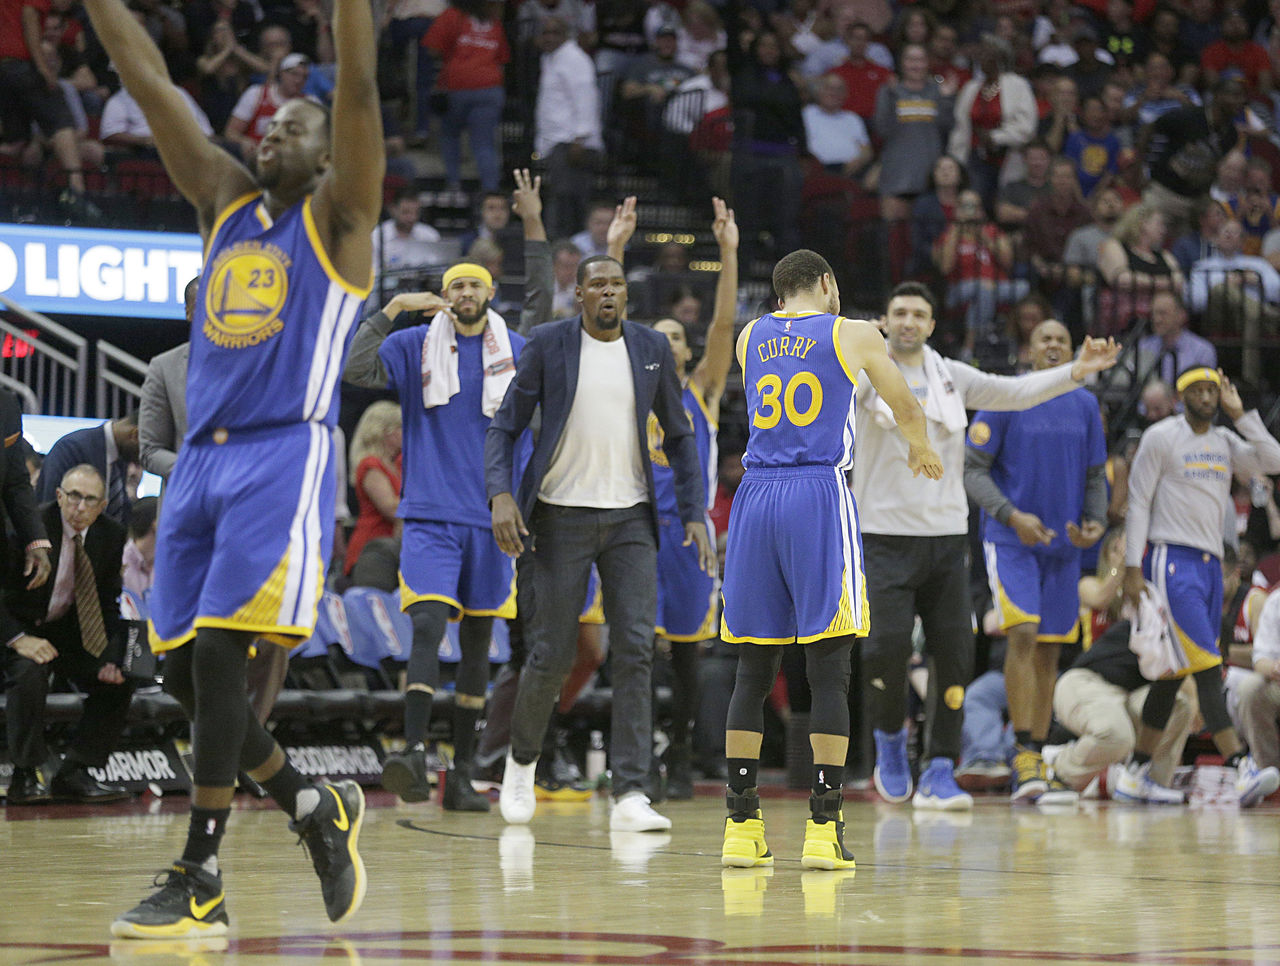 Cropped 2017 03 29t031117z 1560986040 nocid rtrmadp 3 nba golden state warriors at houston rockets